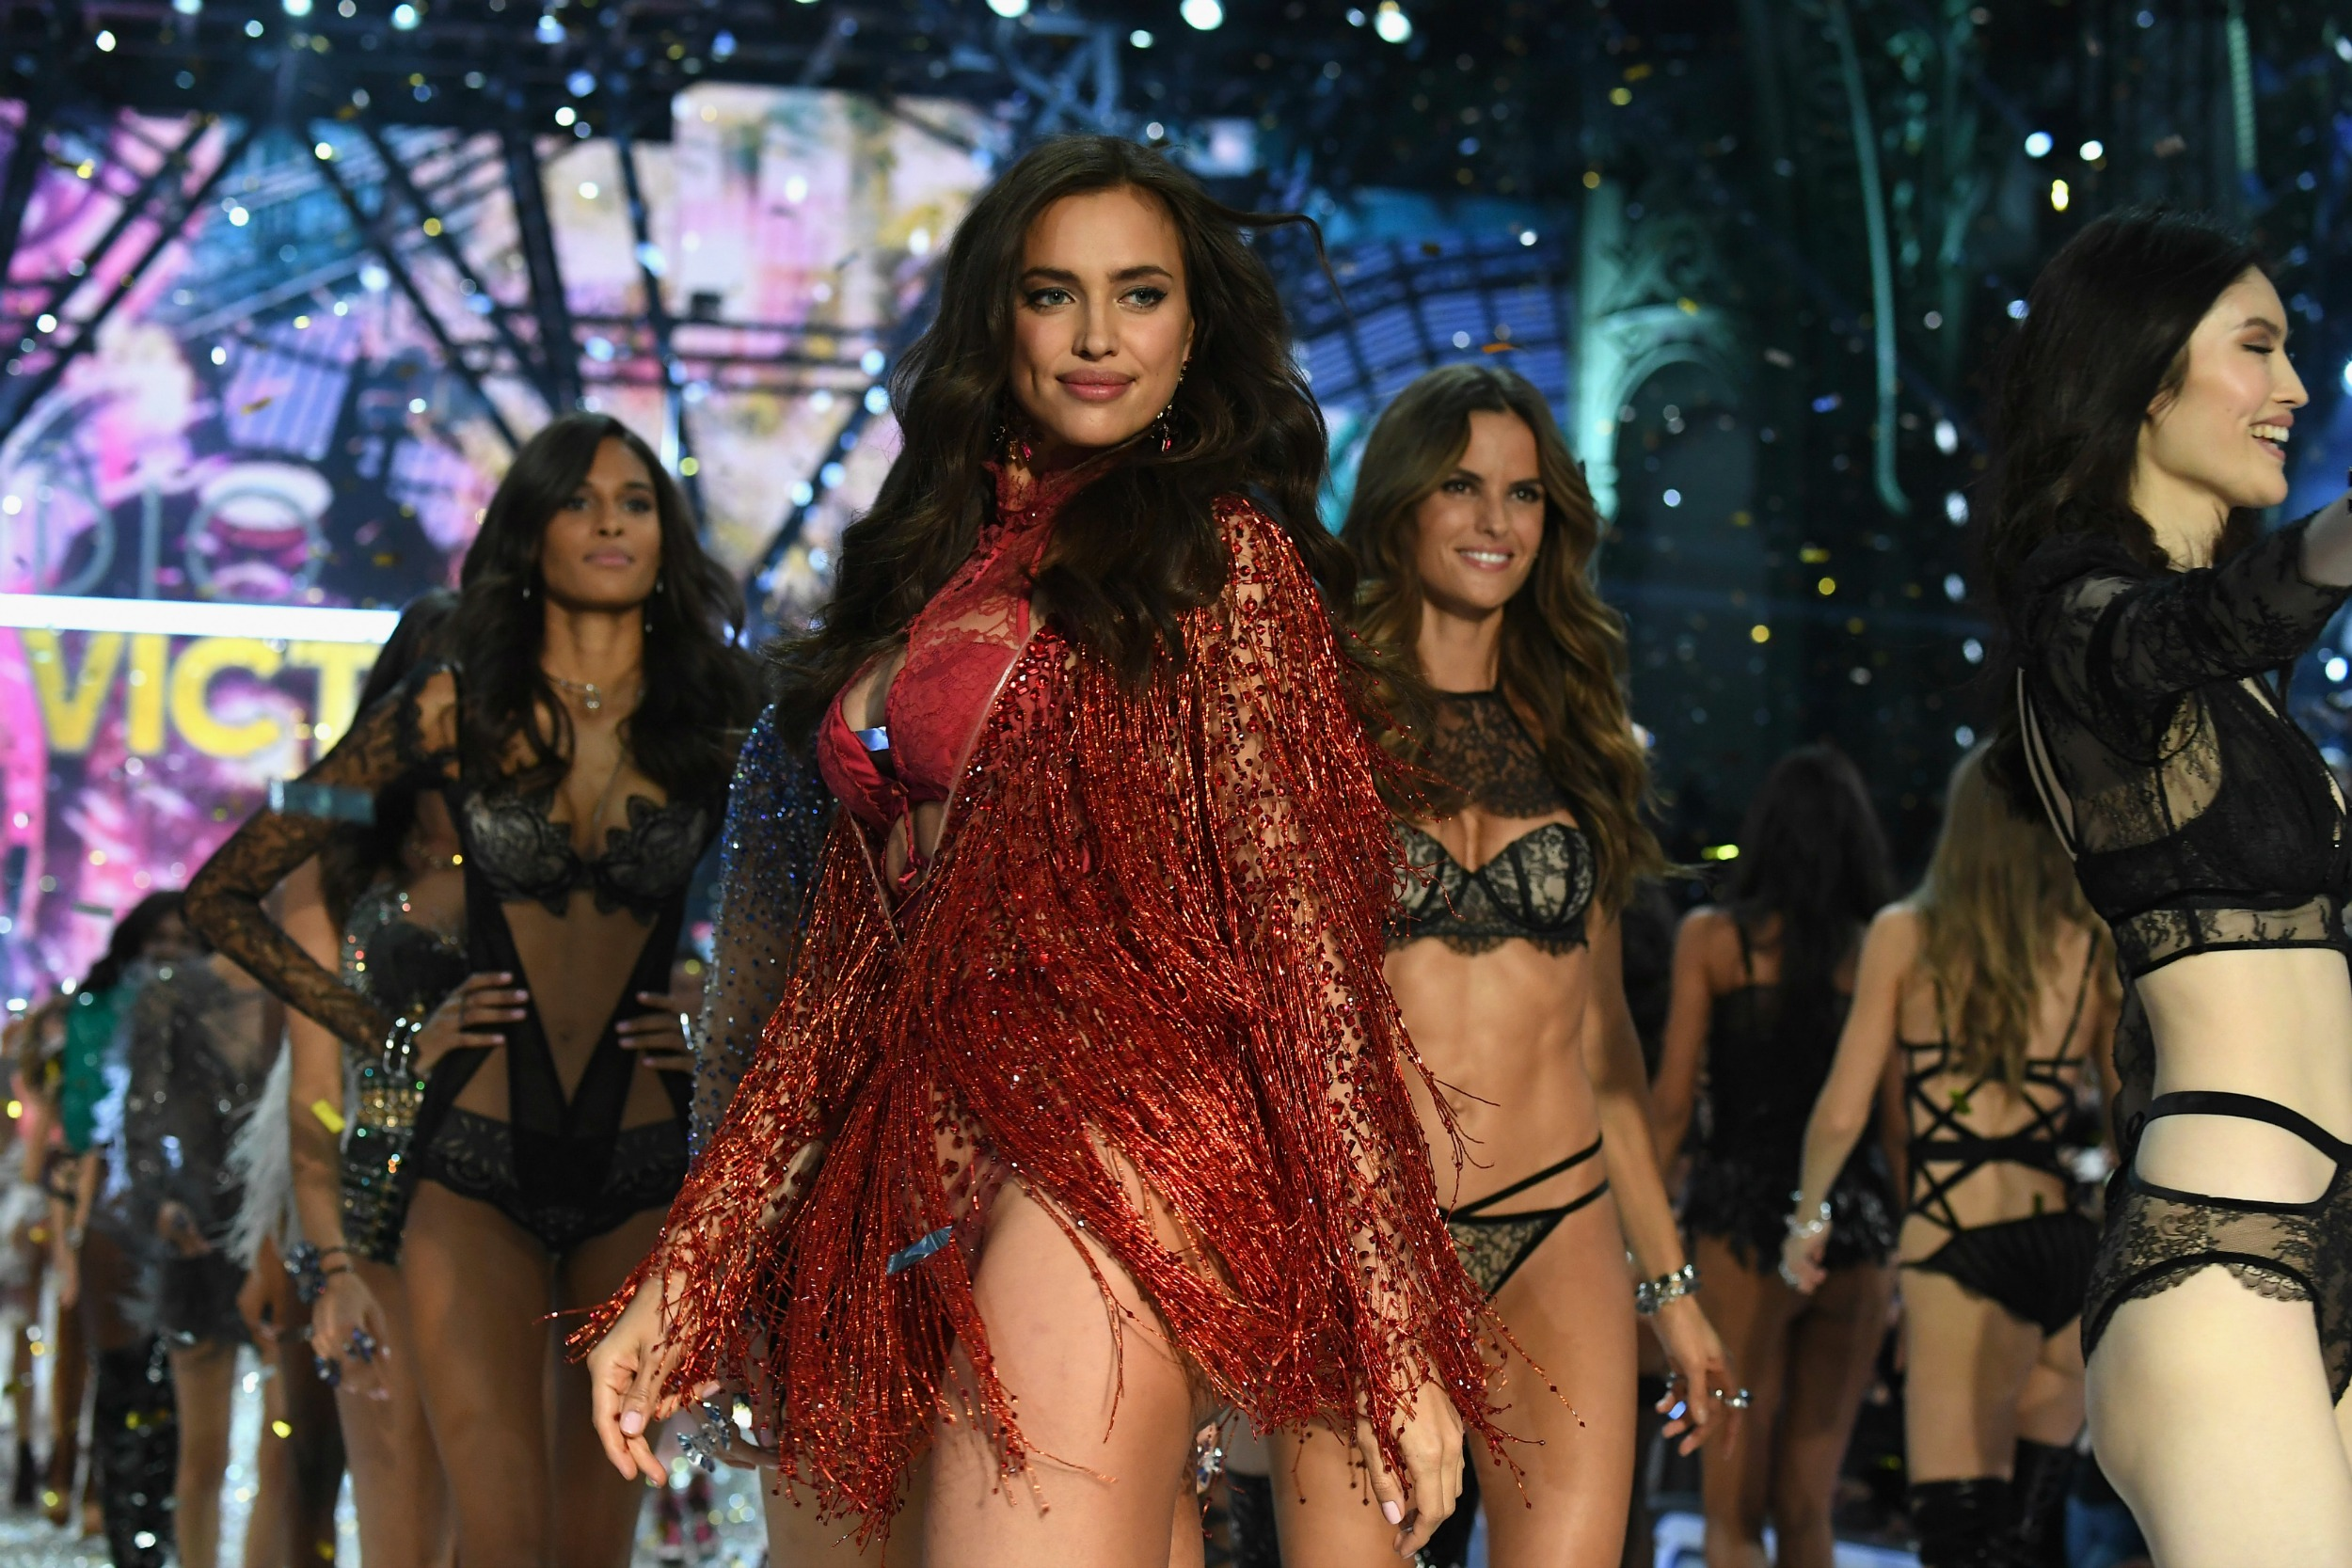 Things you didn't know about Irina Shayk